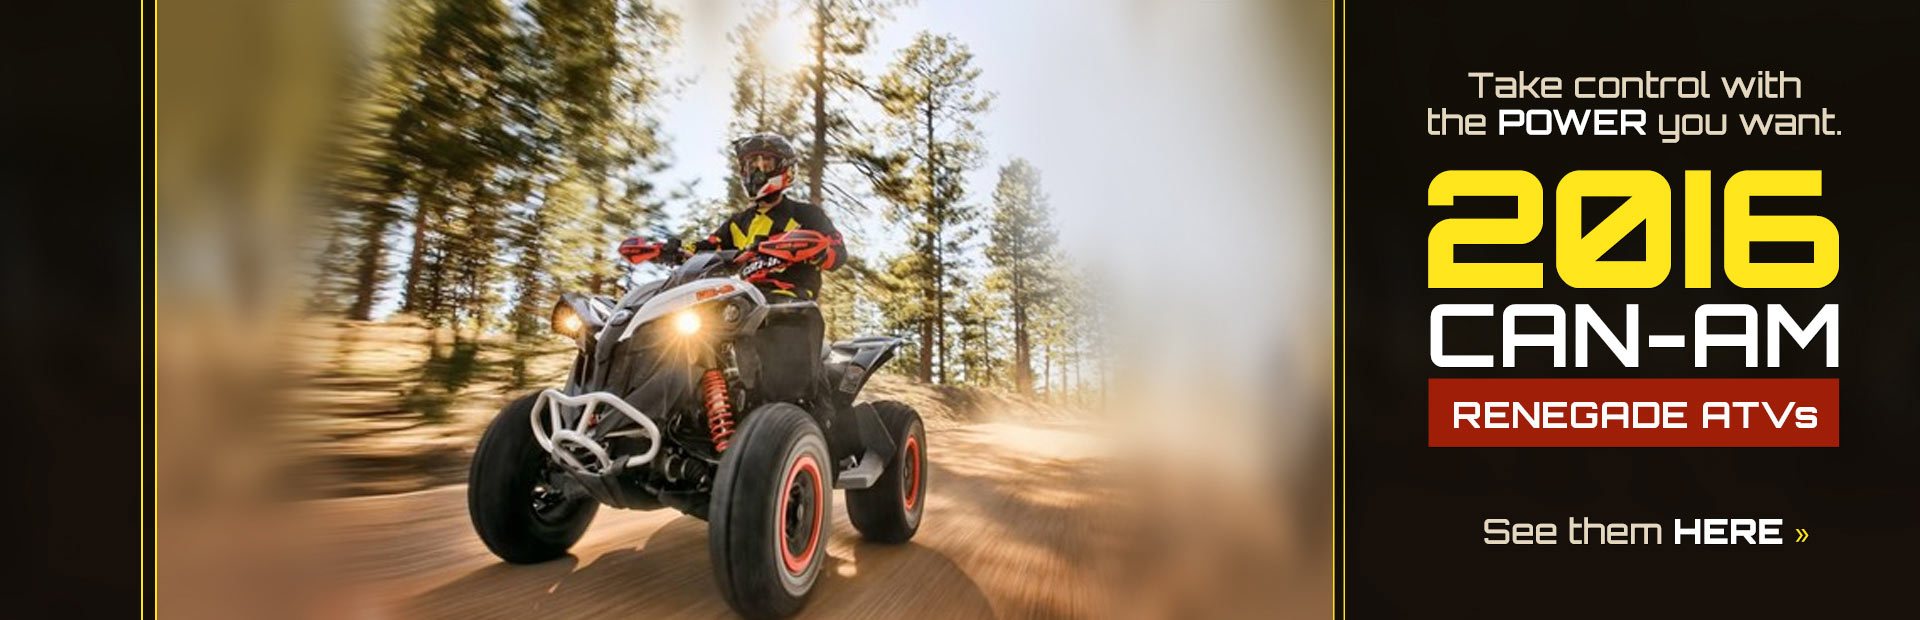 2016 Can-Am Renegade ATVs: Click here to view the models.